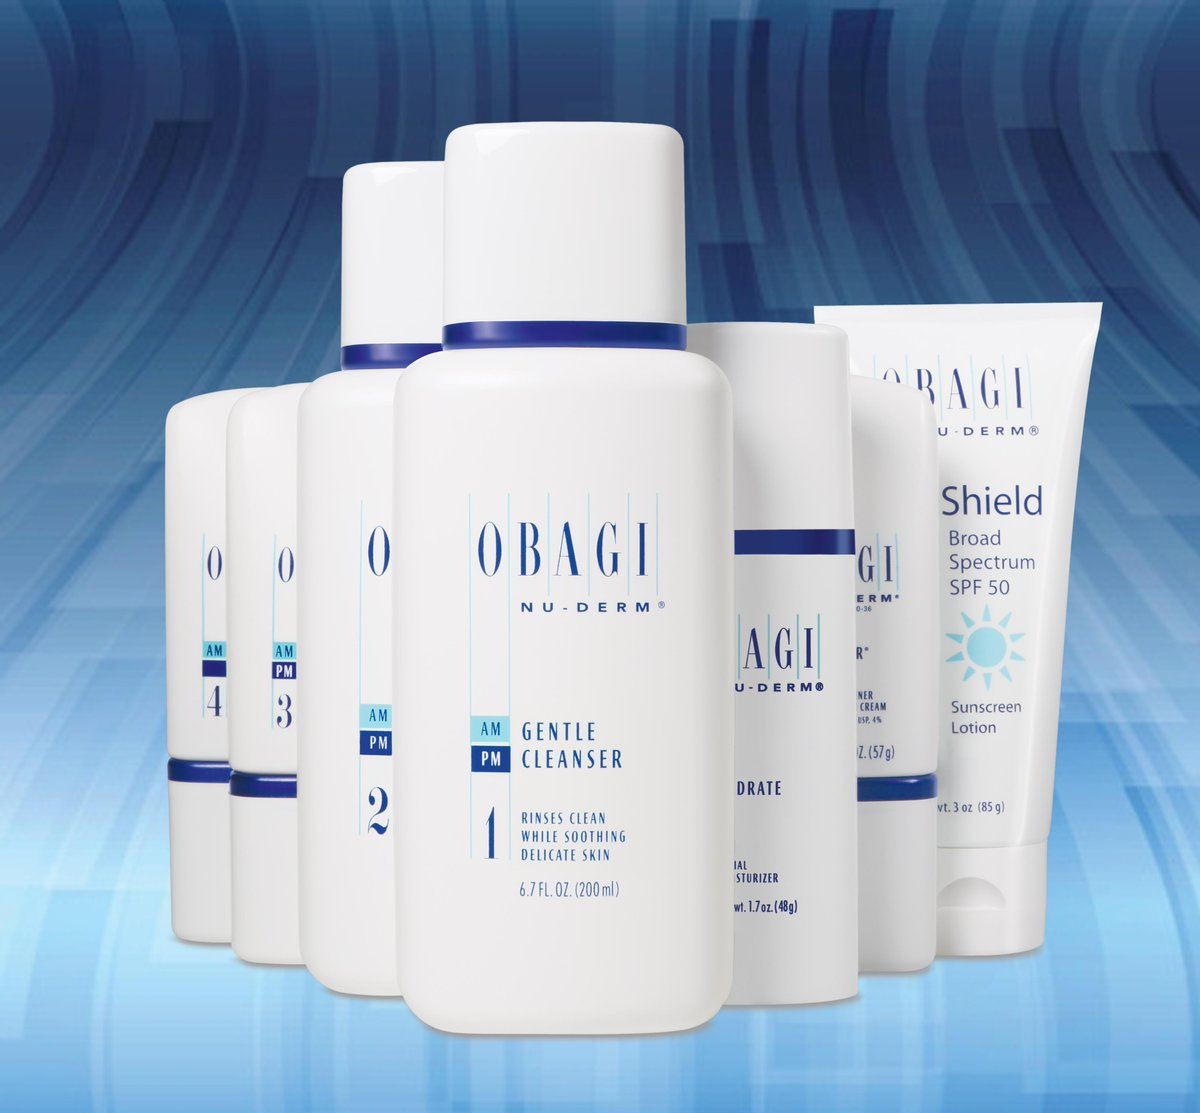 RETWEET if Nu-Derm is your must-have Obagi® product. http://t.co/j3uz0q2Y4L http://t.co/lGDzvFbt2V